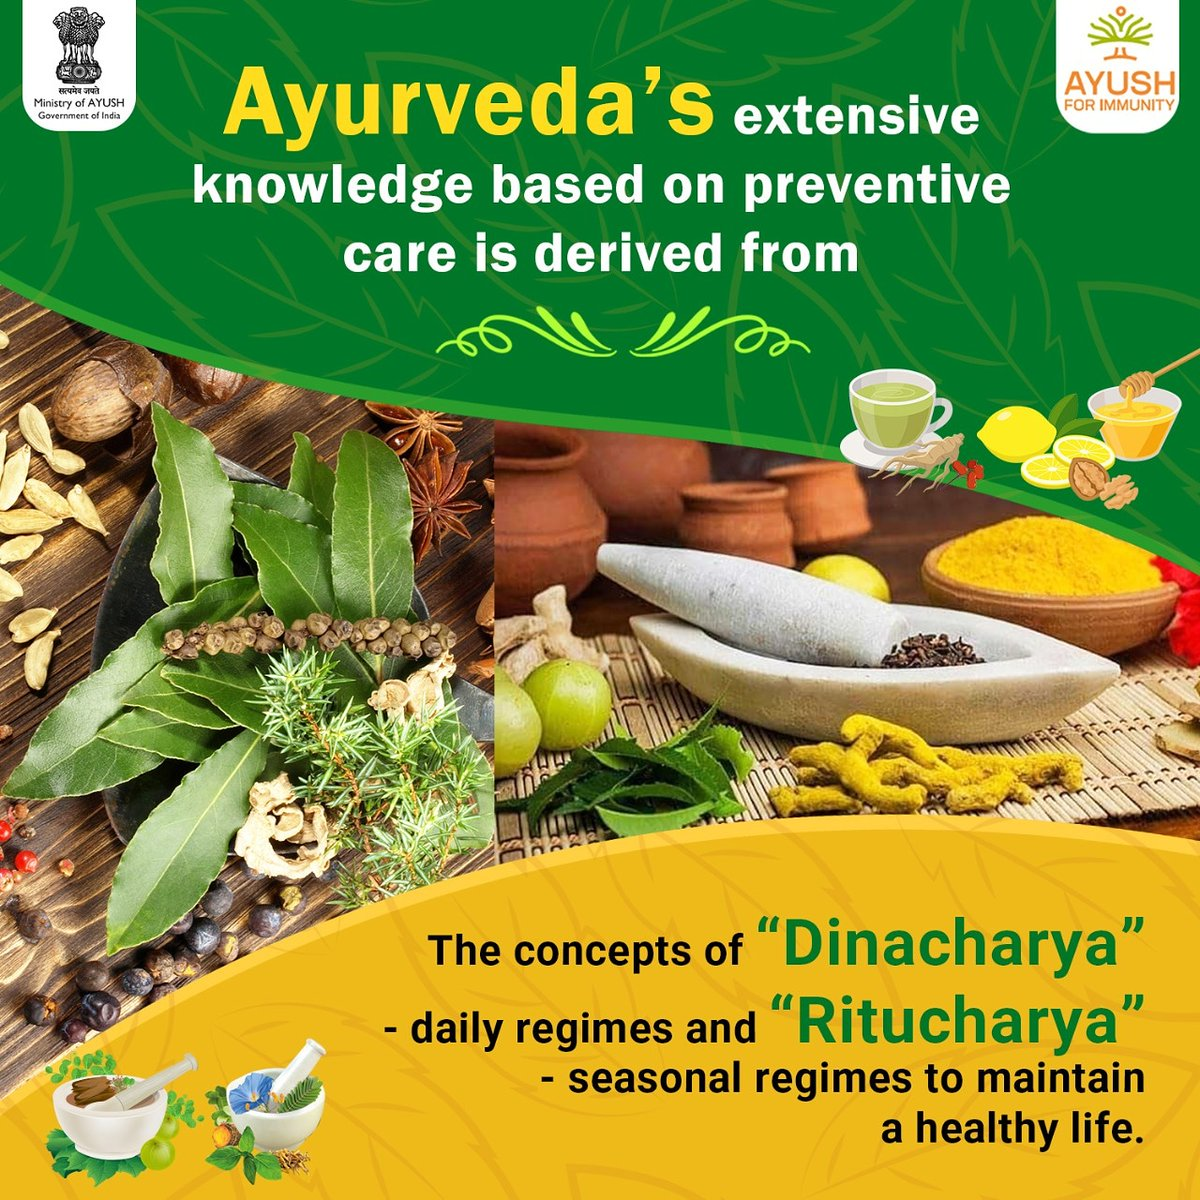 Enhancing #immunity plays an important role in maintaining optimum #health.   As per #Ayurveda- the science of life, it is important for the body to stay connected to the rhythms of nature.   While #Dinacharya is a daily routine designed to maintain and connect us to our